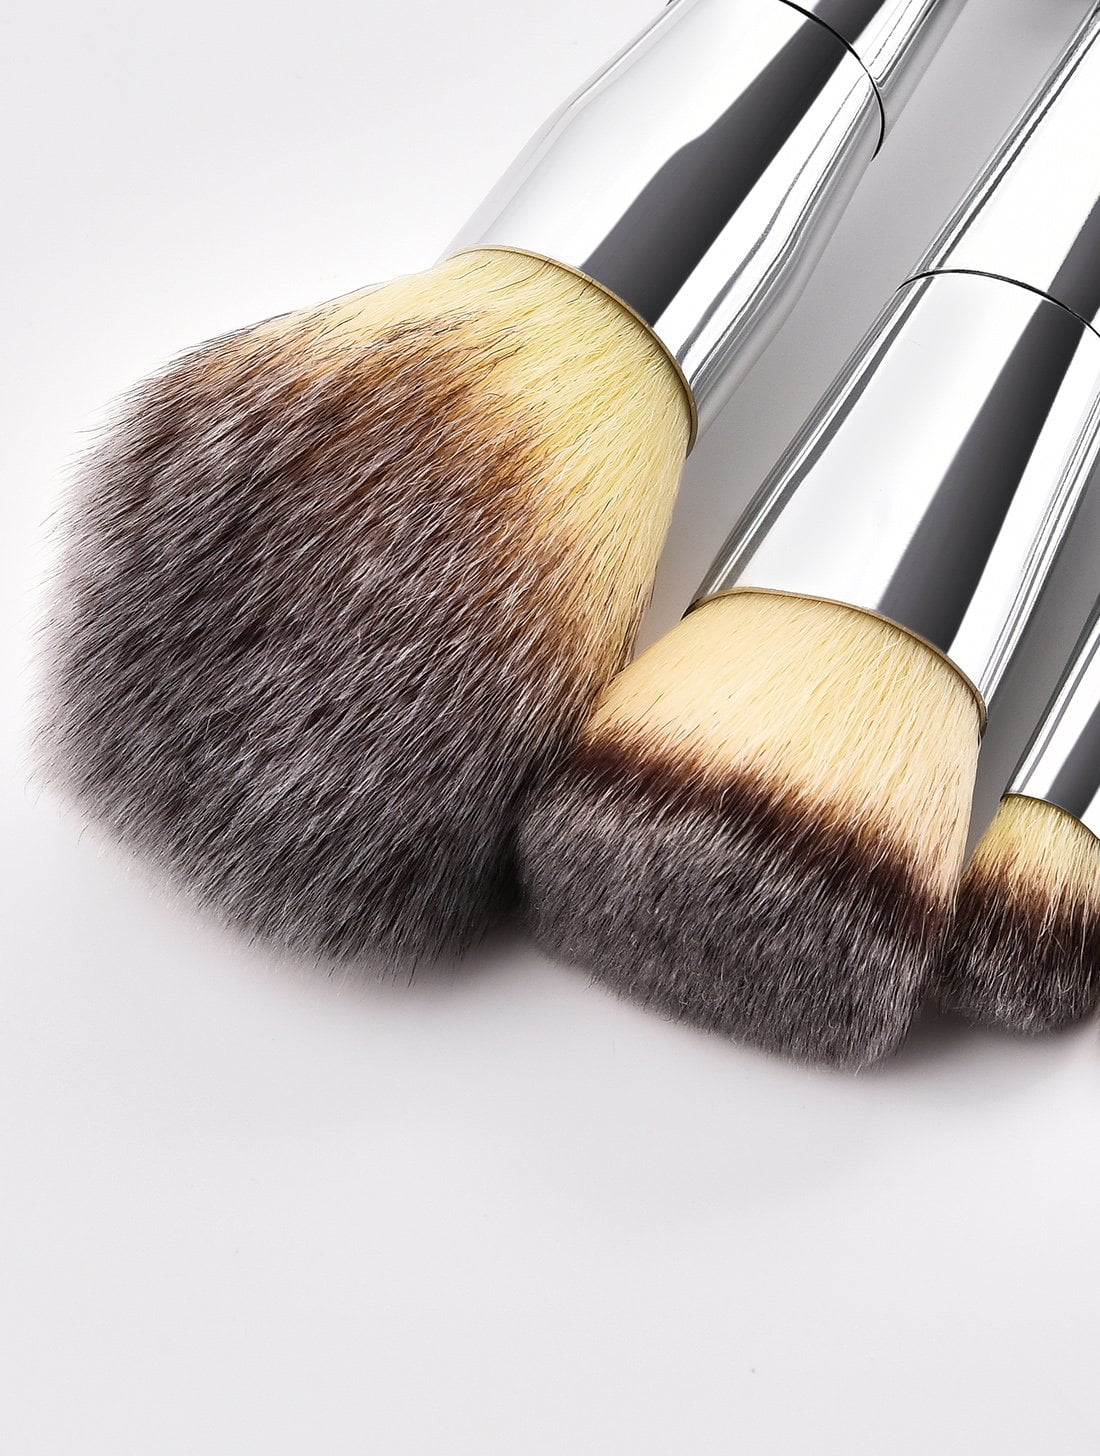 Tools - Royal Luxe Cosmetics